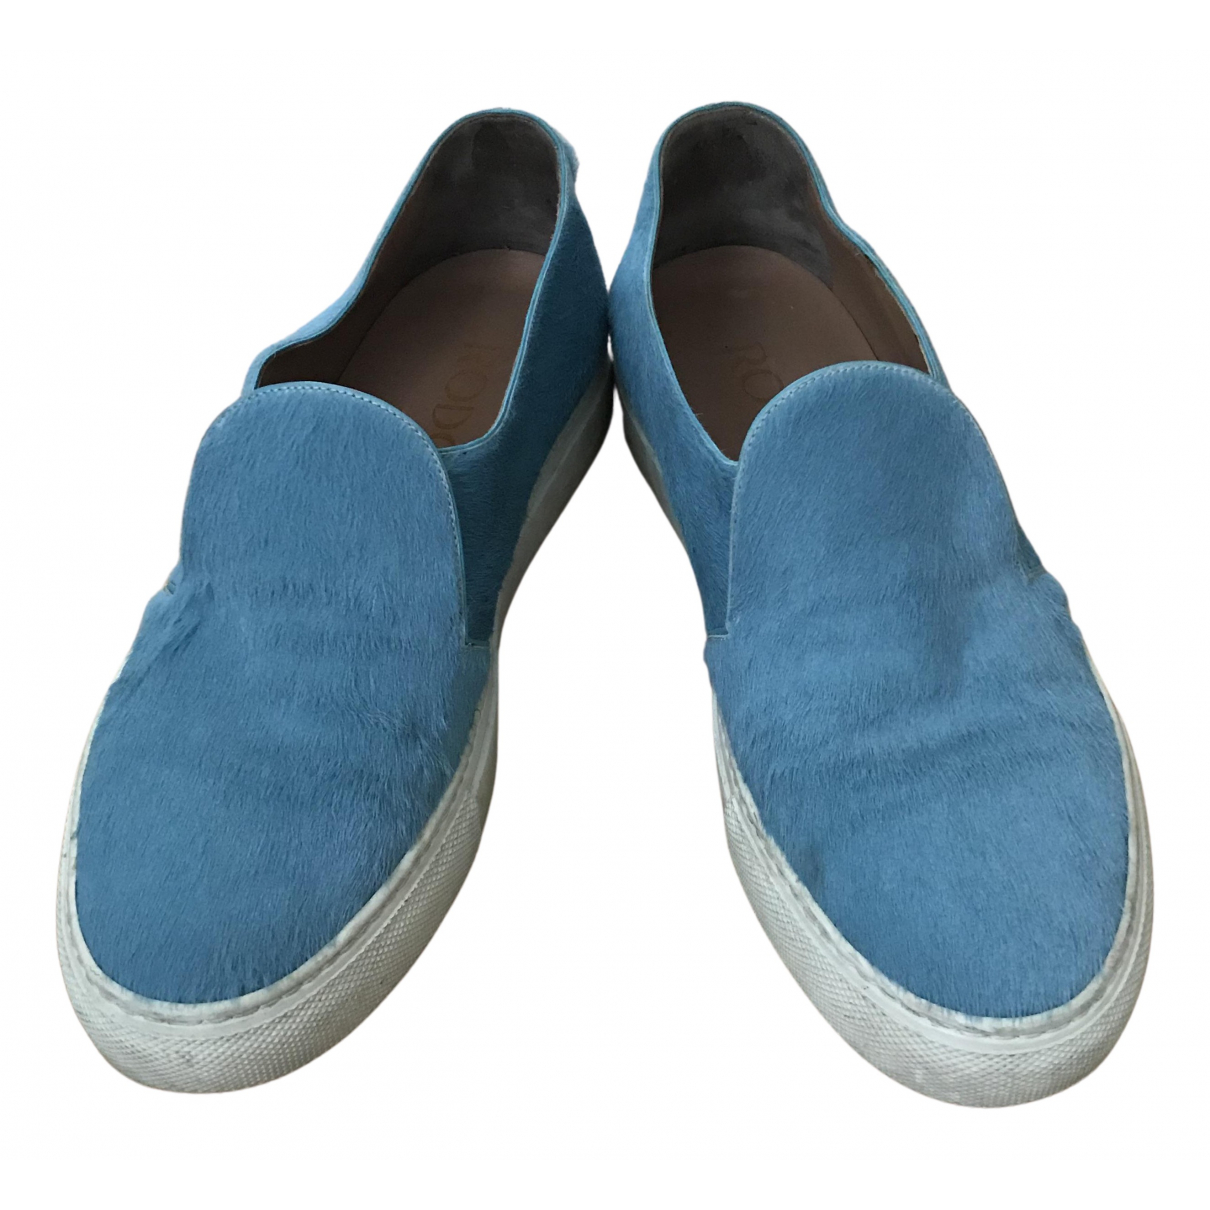 Rodo N Turquoise Leather Trainers for Women 37 EU